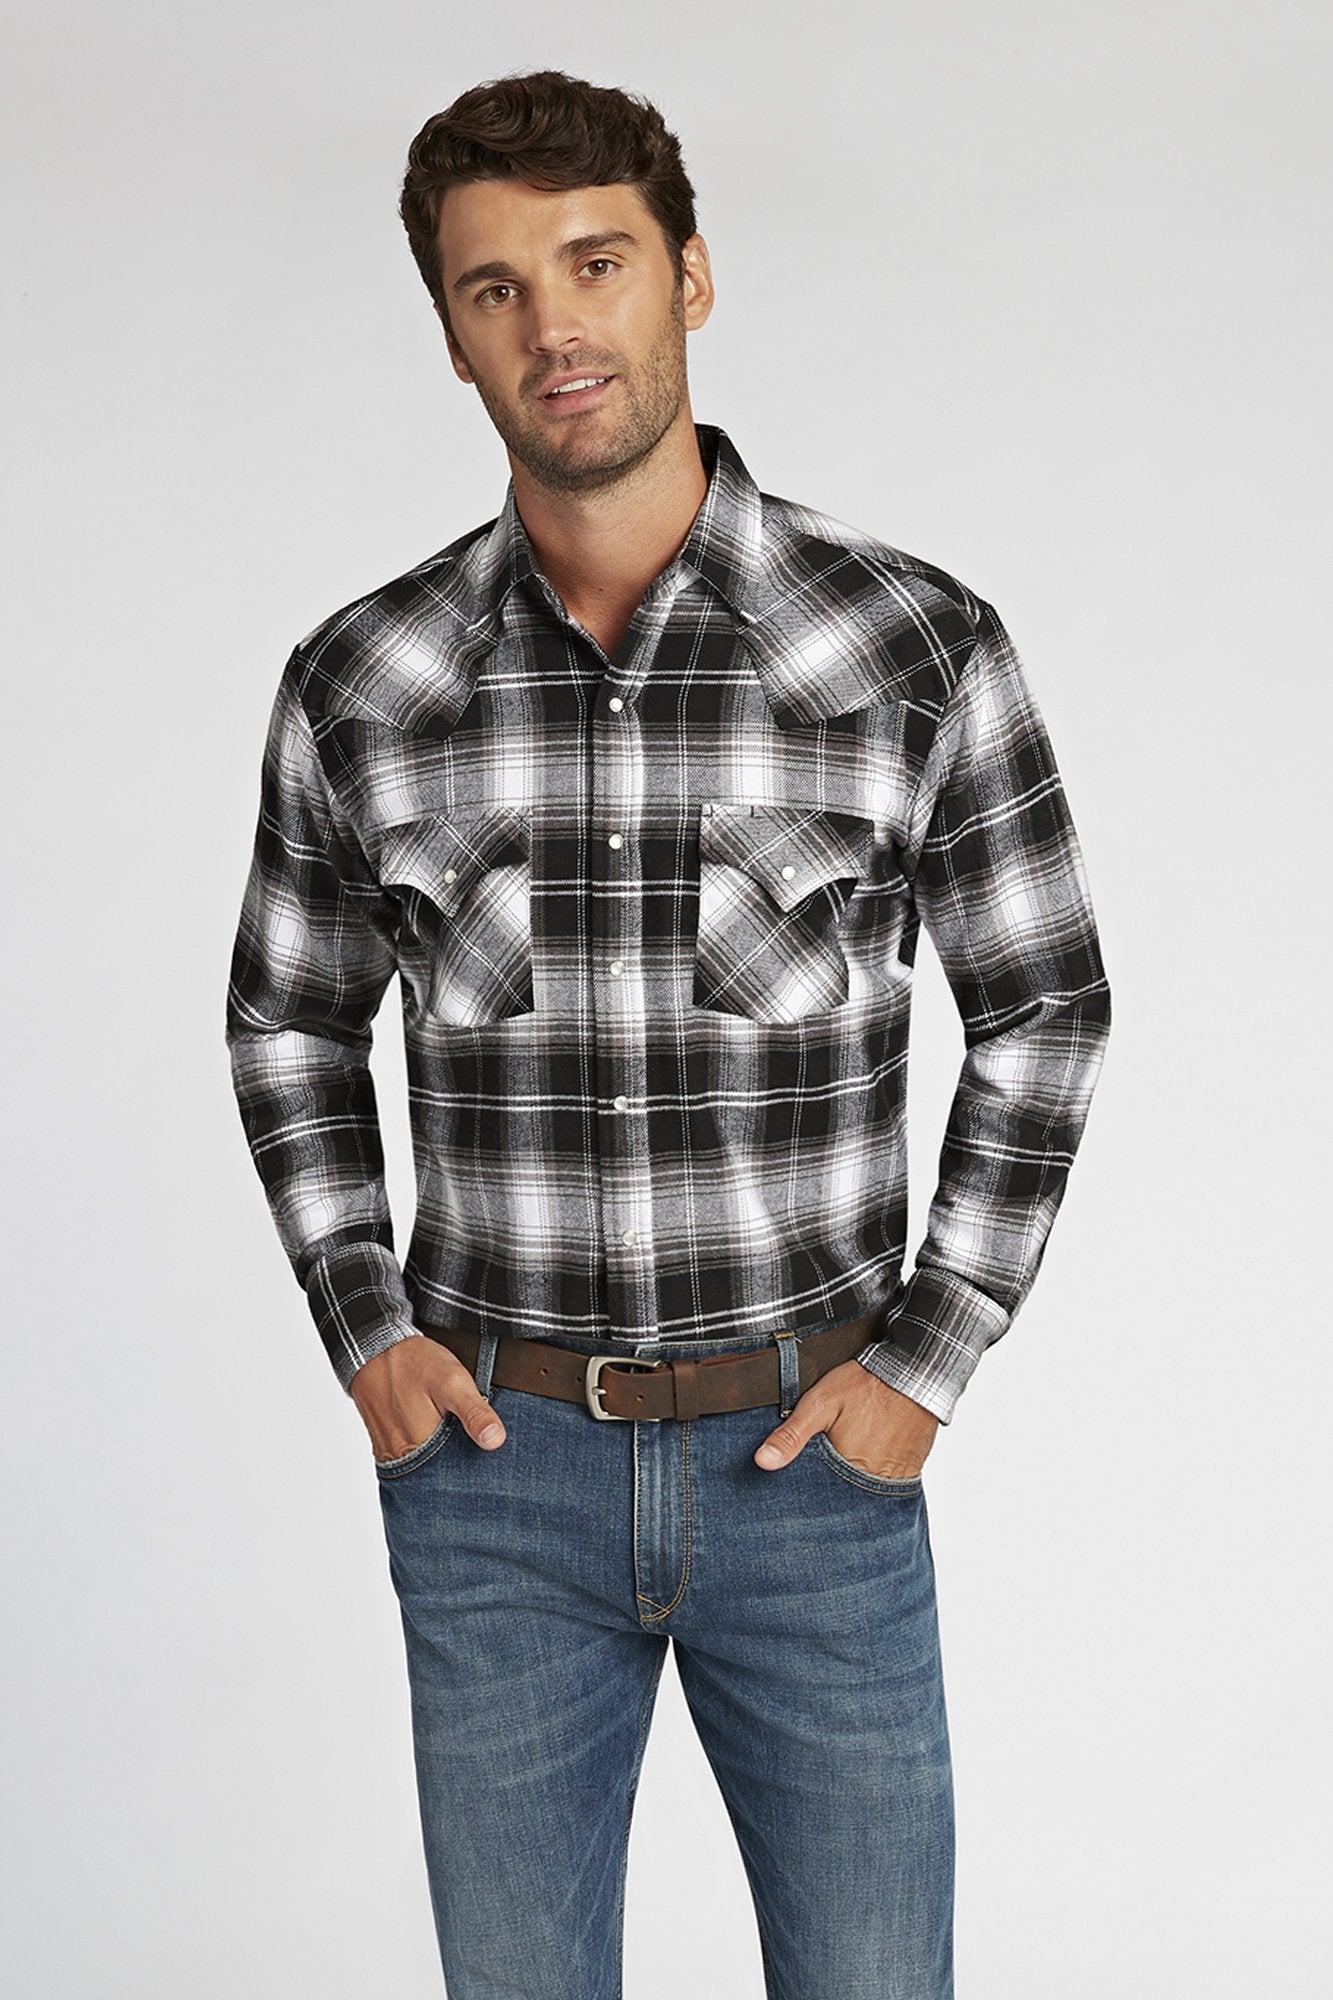 Long Sleeve Brawny Flannel Shirt in Black Plaid | Ely Cattleman